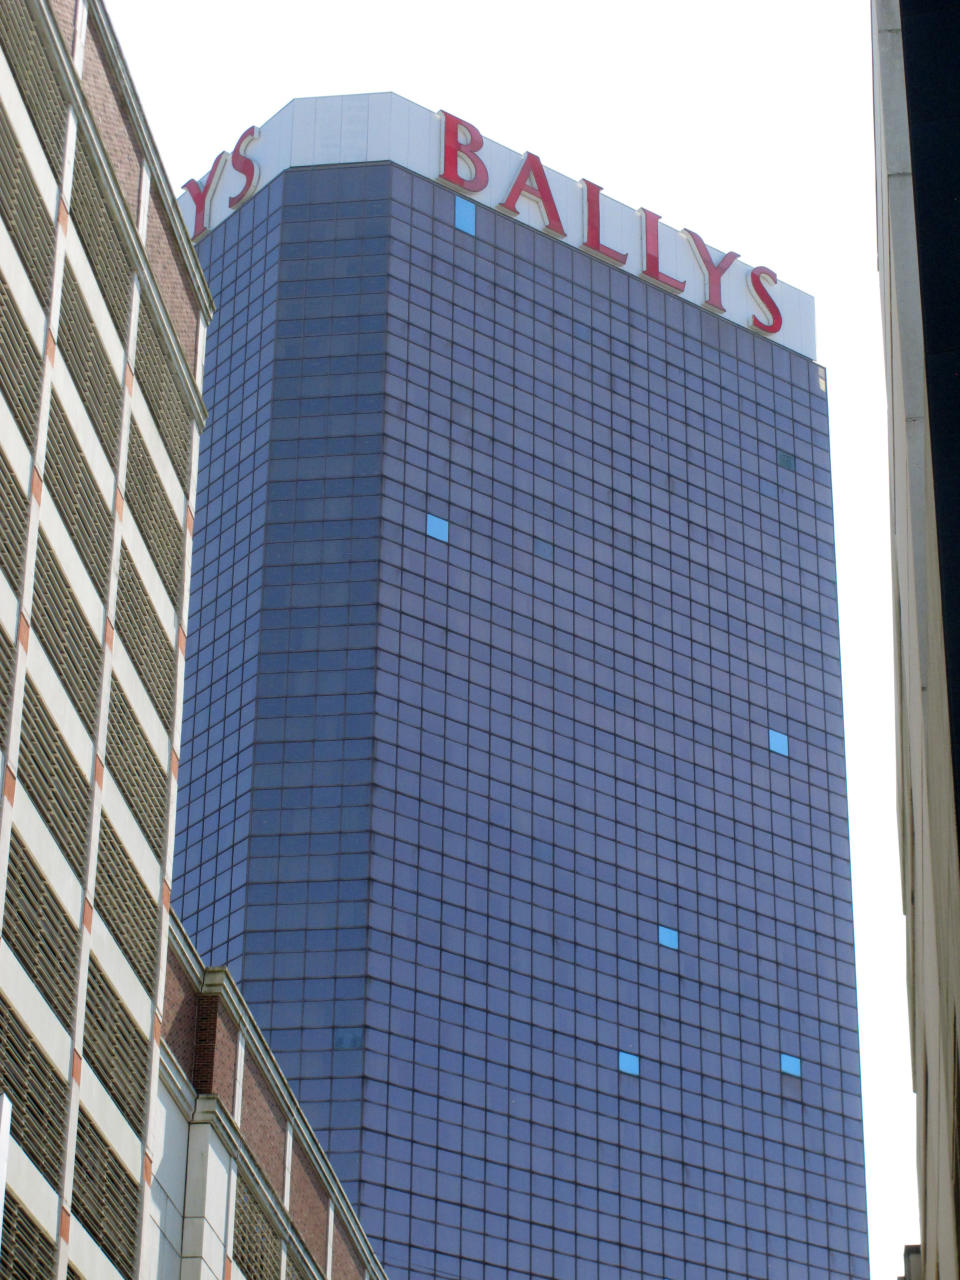 This Oct. 1, 2020 photo shows the exterior of Bally's casino in Atlantic City N.J. The new owners of Bally's Atlantic City are attempting to revive a comatose casino in perhaps the most cutthroat gambling market in America. Rhode Island-based Bally's Corporation is spending at least $90 million on the Boardwalk casino over the next five years, including hotel room makeovers, a renovation of the casino floor, new slot machines and restaurants, and more live entertainment. (AP Photo/Wayne Parry)